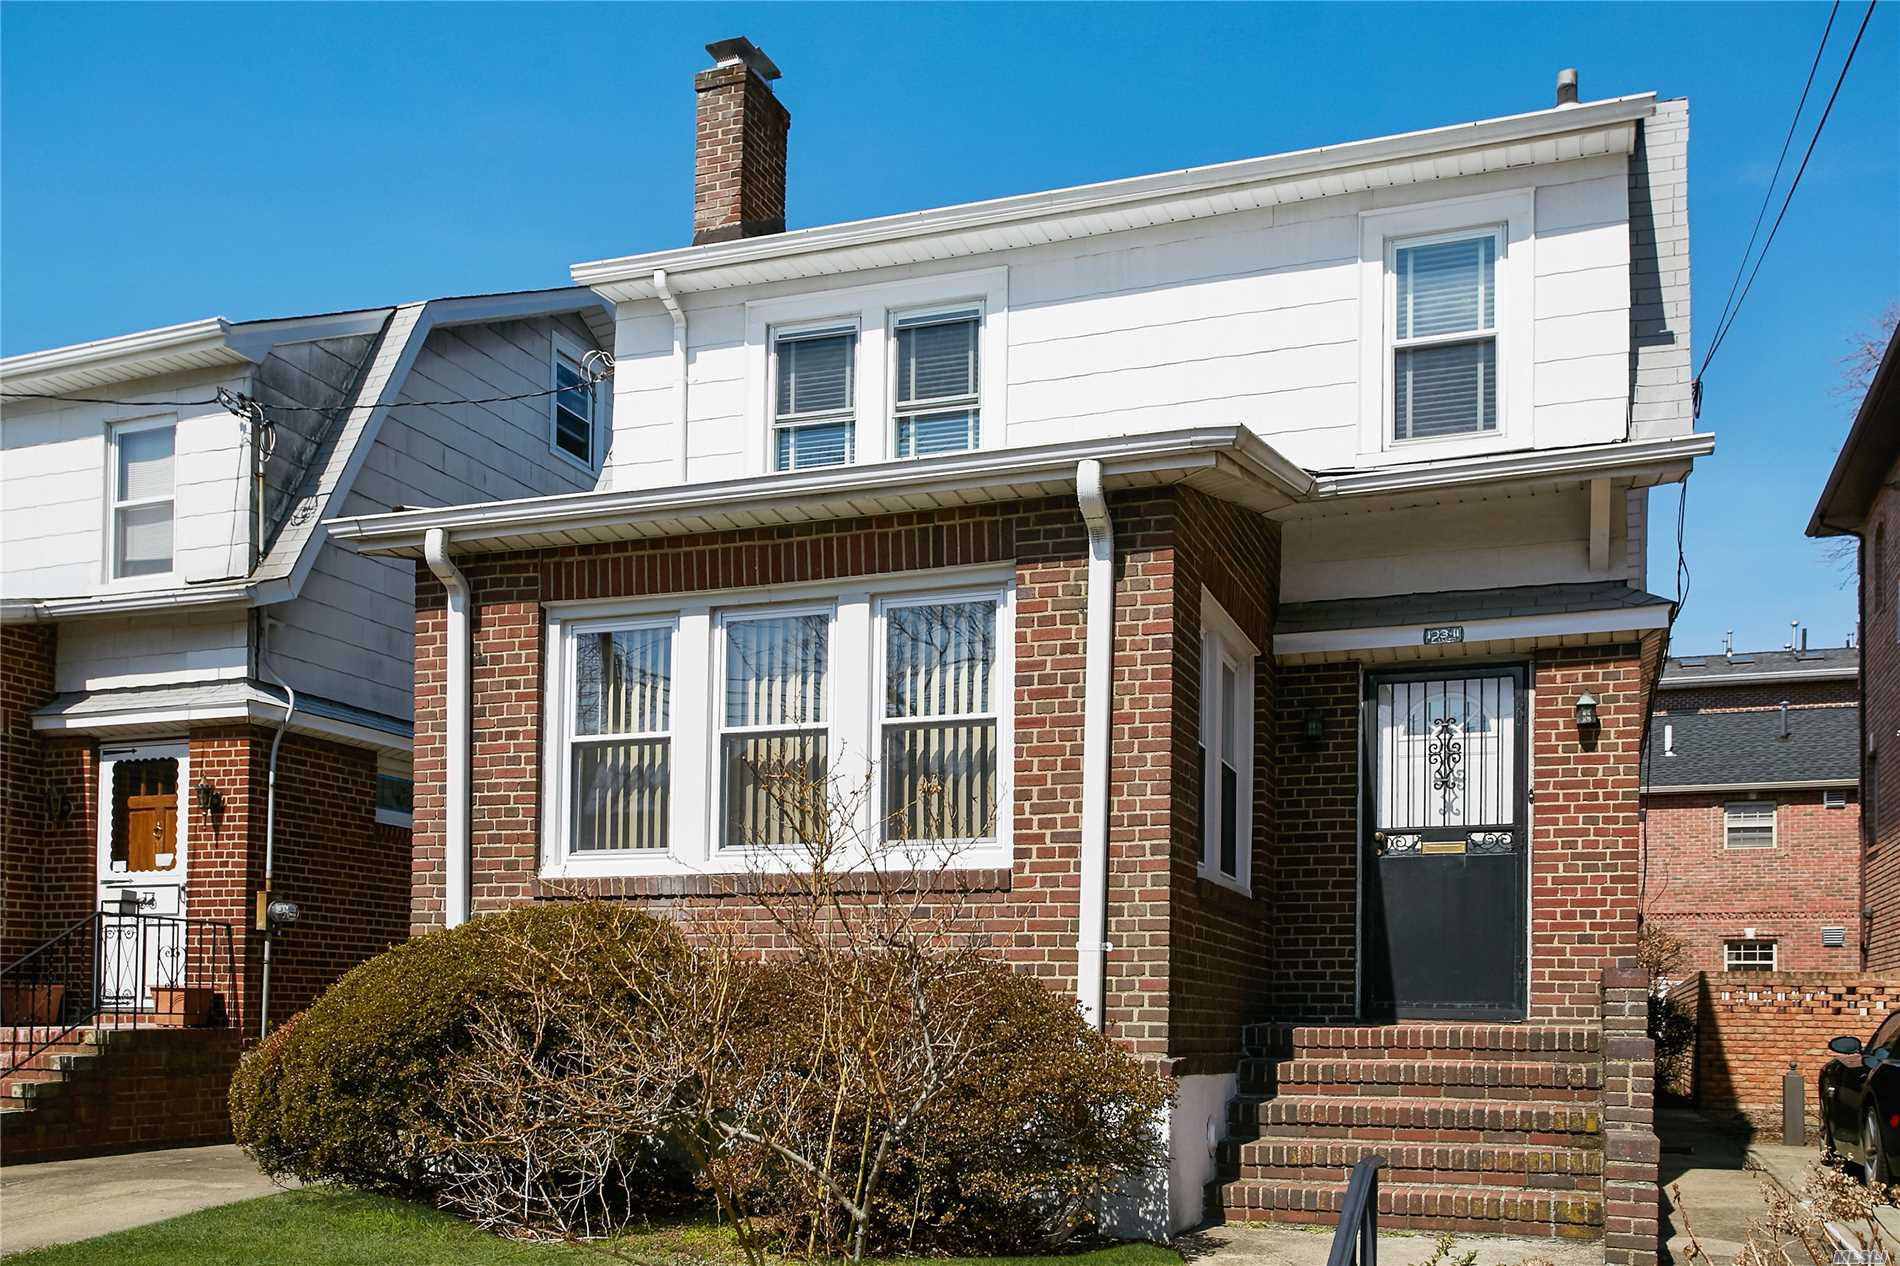 A Spacious and Bright Well Maintained Colonial. Featuring Formal Living Room with Fireplace, Formal Dining Room, Sun Room, Eat in Kitchen, 3 Bedrooms, 1 1/2 Baths, Walk-up Attic. Full Basement. Convenient to Shops and Public Transportation. Near LIRR Station. This Property is Sold AS IS. R3X Zoning